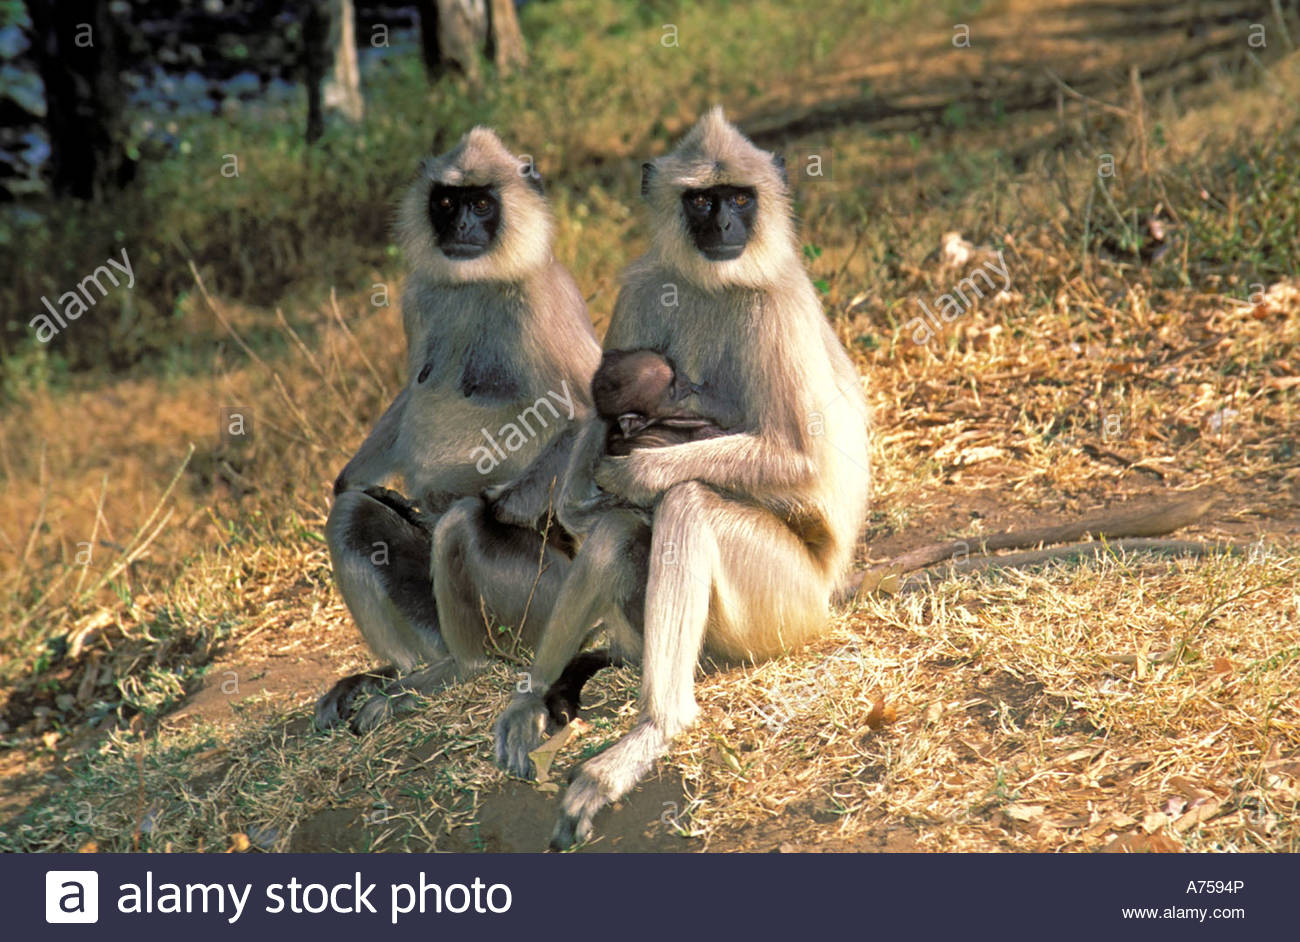 HANUMAN LANGURS IN INDIA - Stock Image